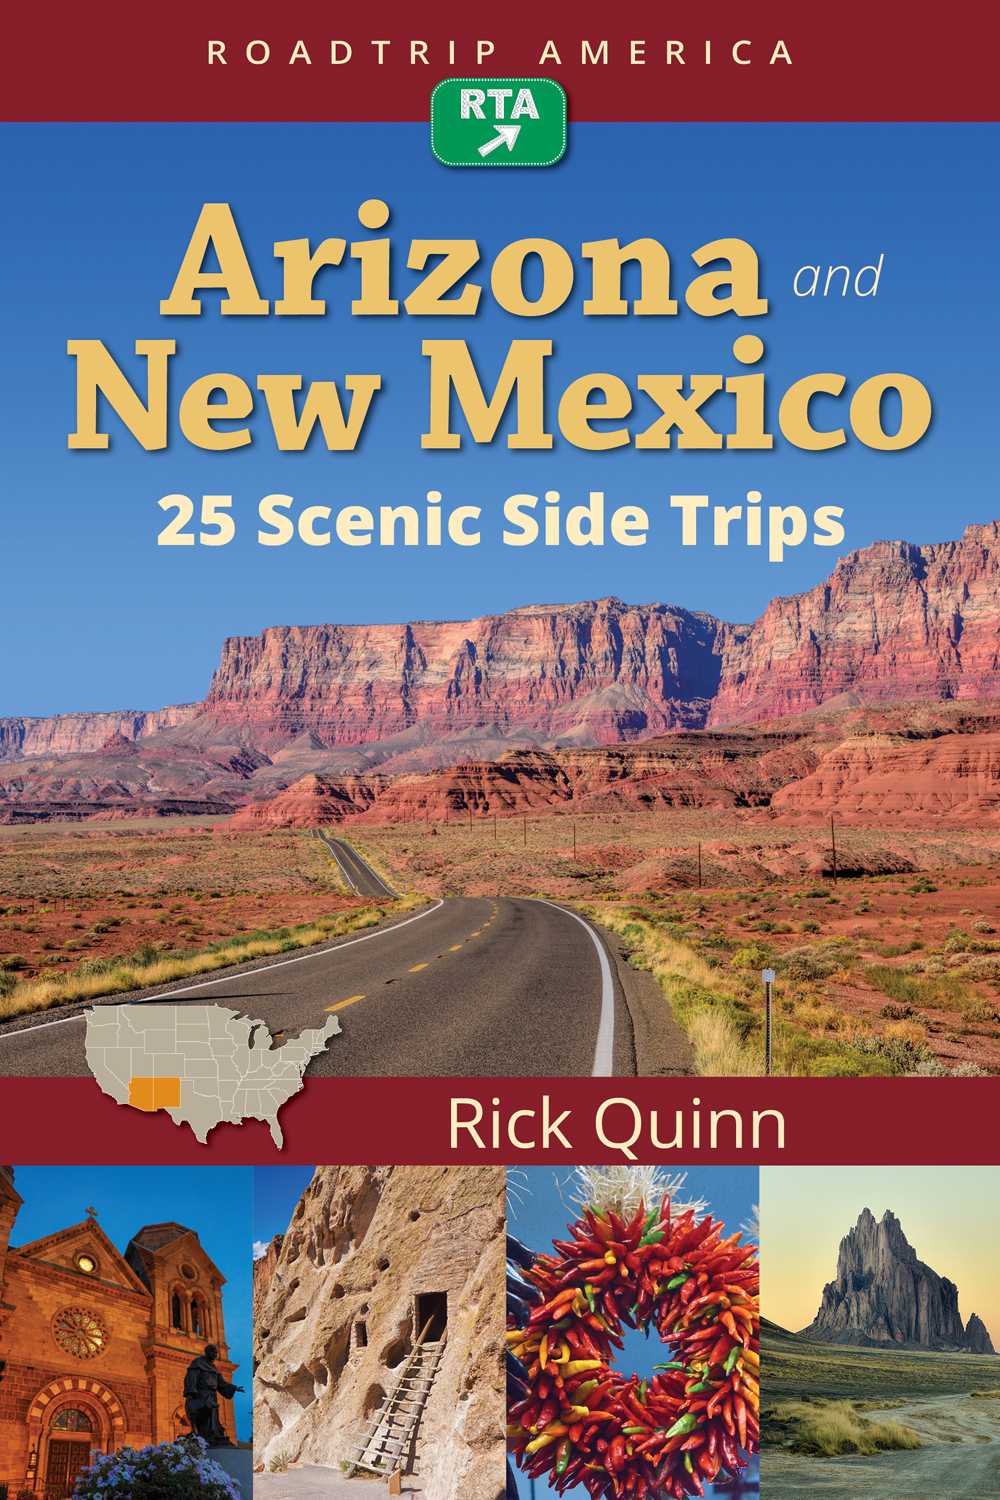 Road Map Of Arizona And New Mexico.The Great American Roadtrip Forum Free Downloadable Maps Based On